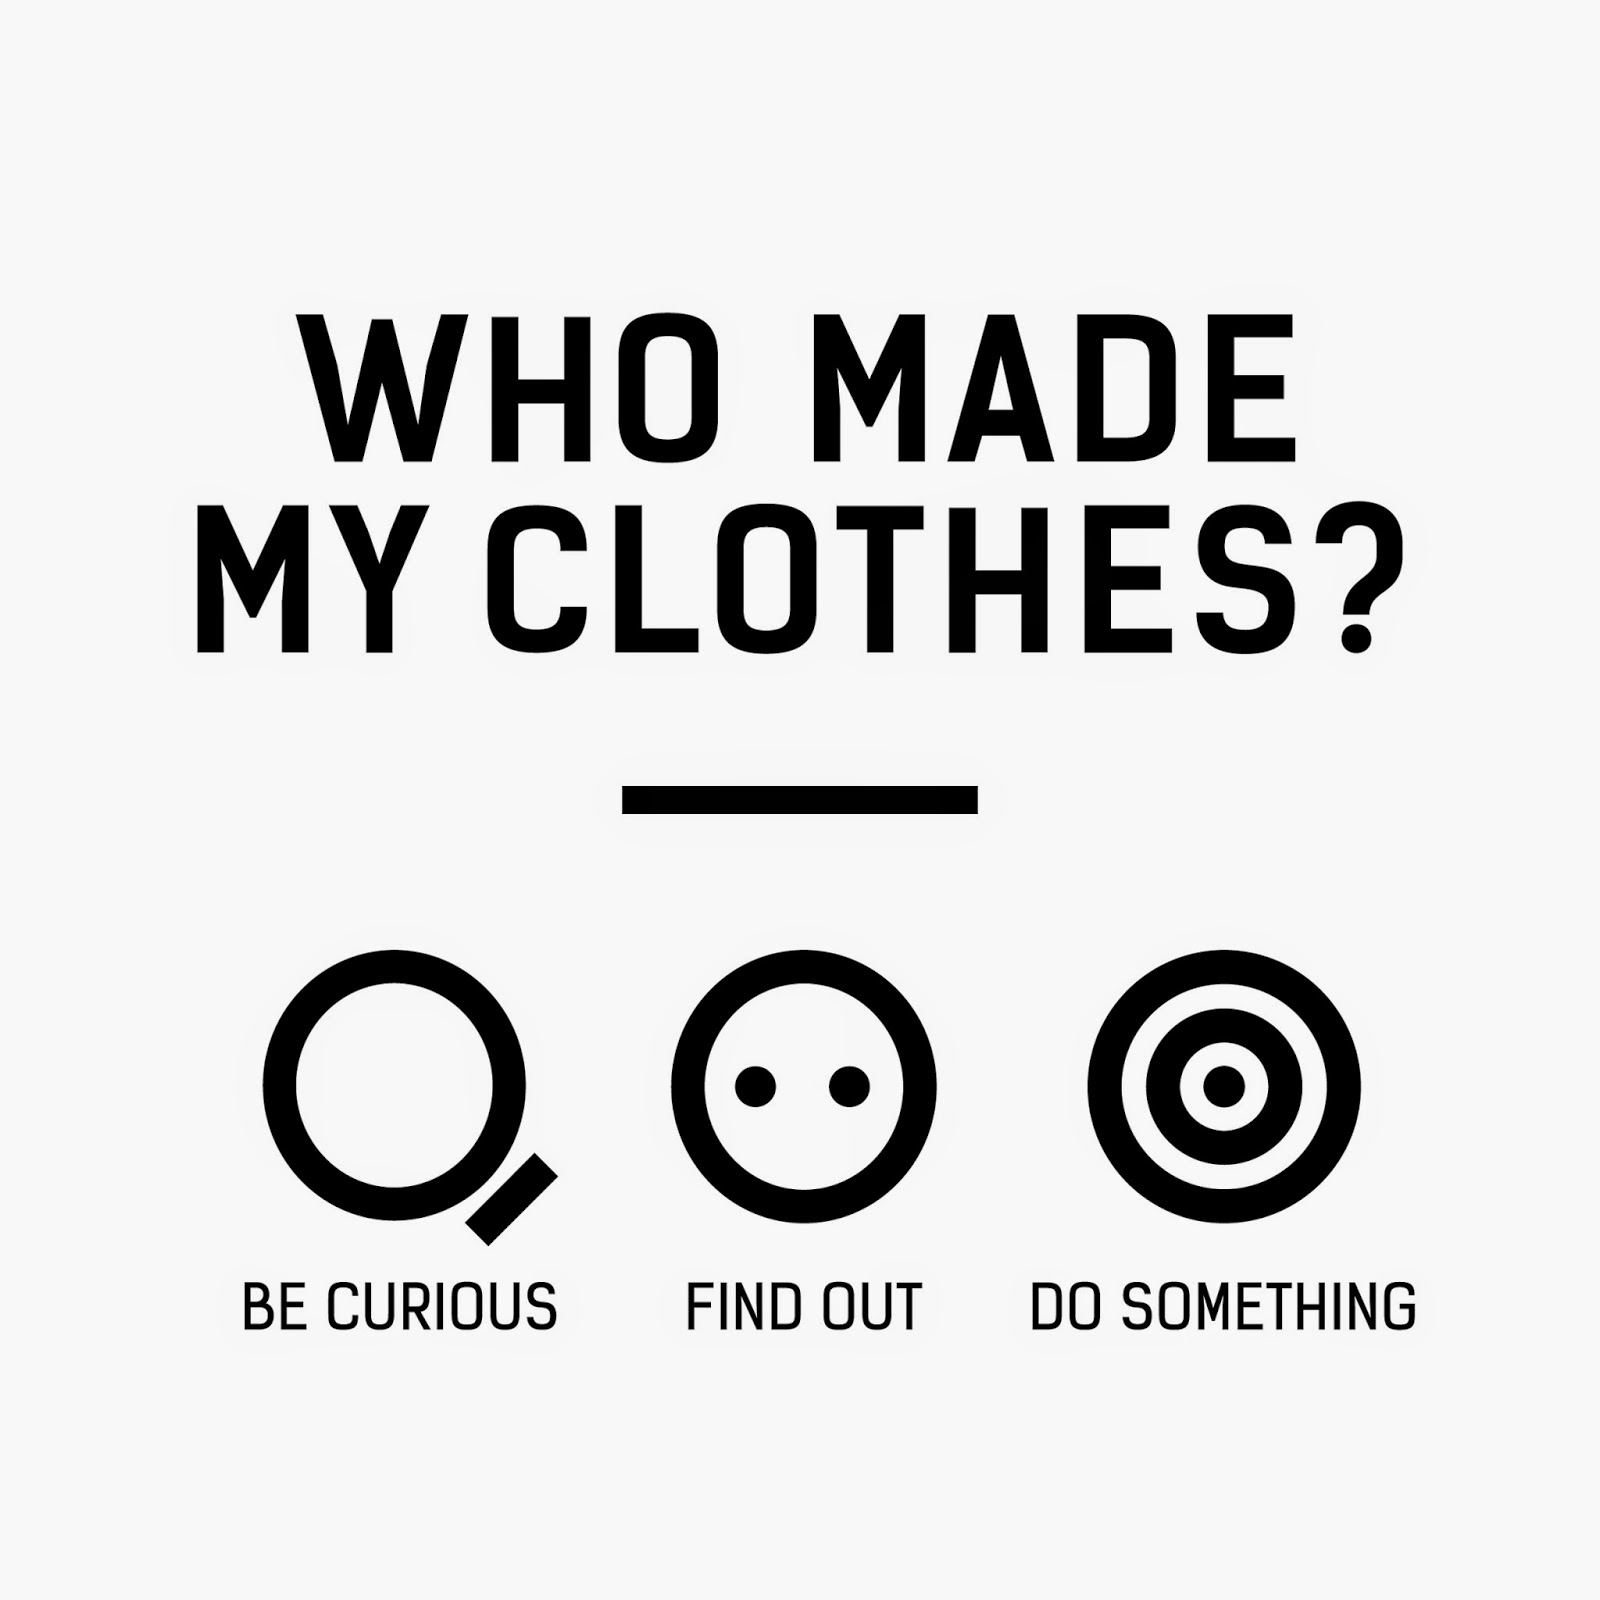 fashion revolution, whomademyclothes, ethical fashion, ethical fashion blog, fashion blog, bangladesh factory collapse, rana plaza